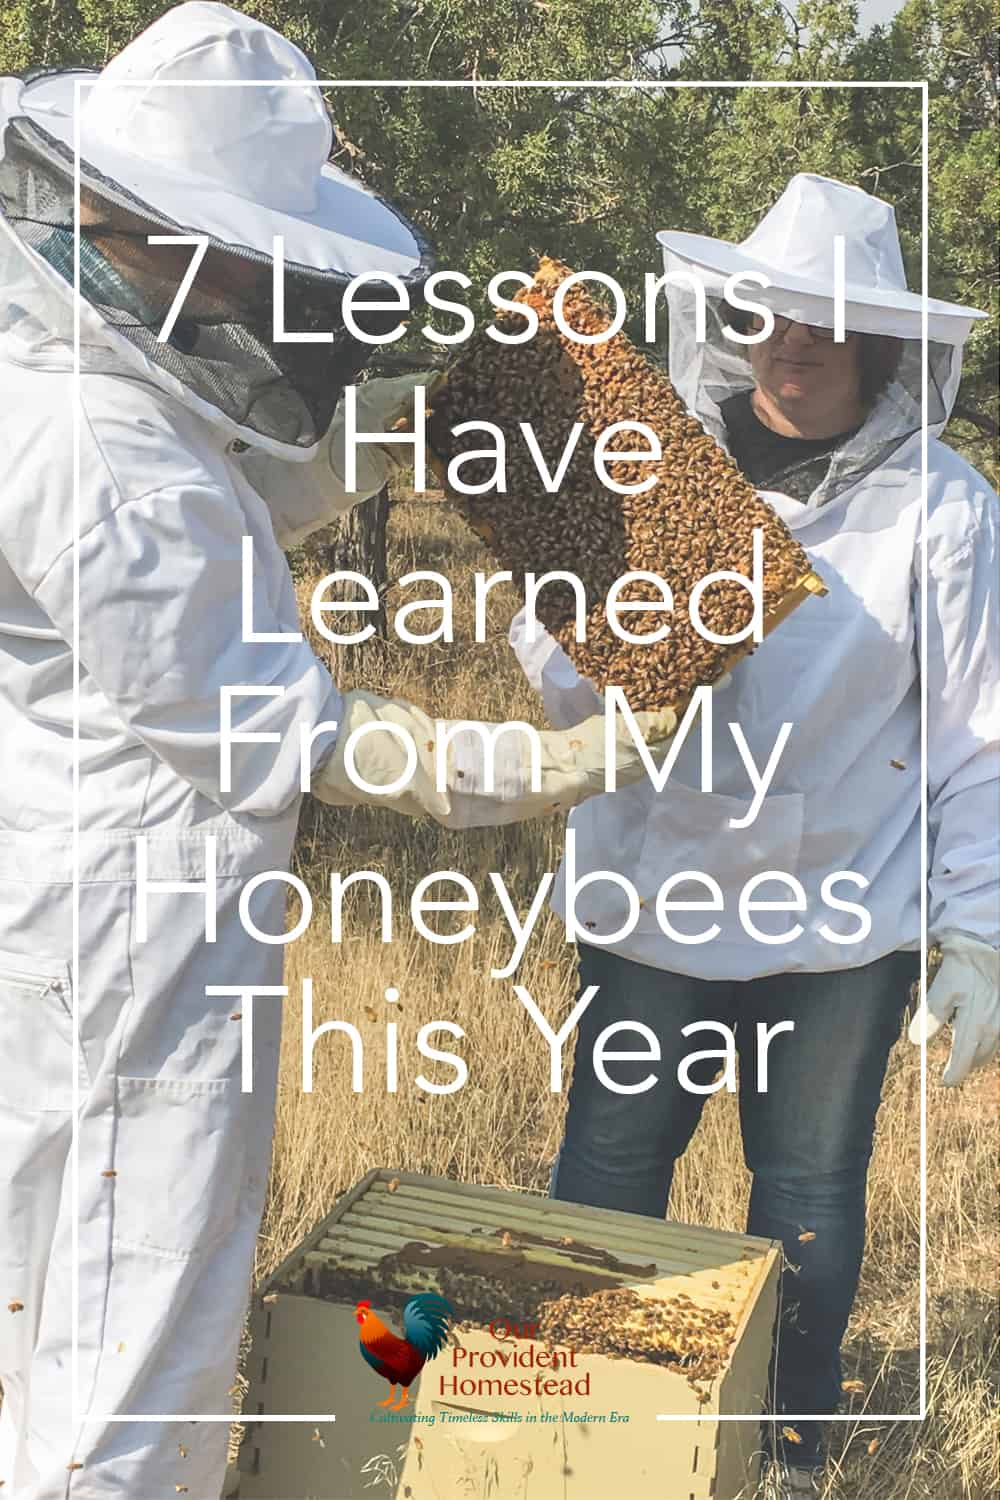 How are my honeybees doing this year? Click here to see the 7 lessons I have learned from my honeybees this year to be a better beekeeper. #beekeeping #honeybees #homesteading